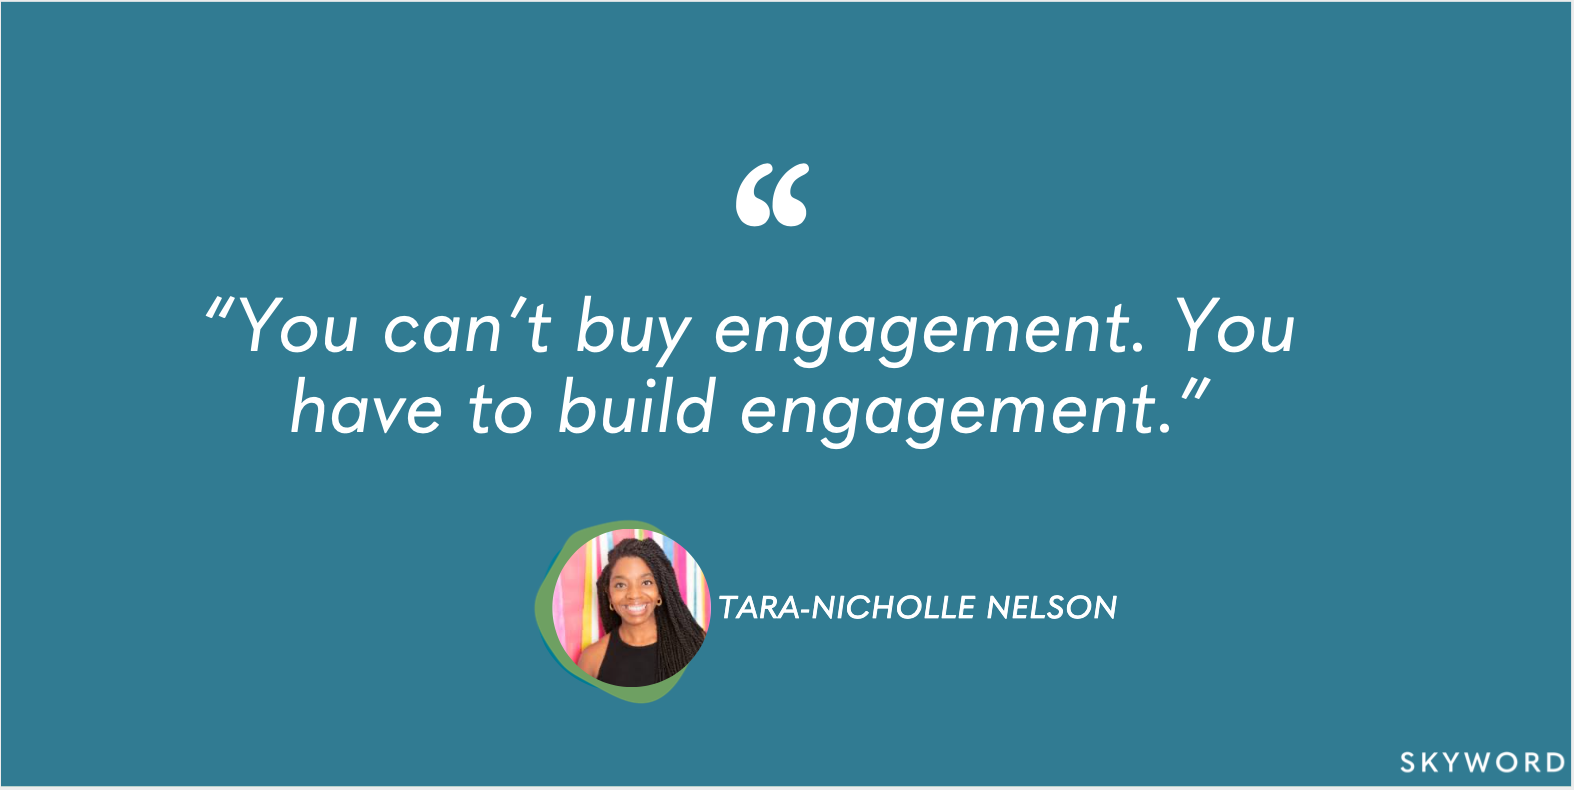 """""""You can't buy engagement. You have to build engagement."""" - Tara-Nicholle Nelson"""